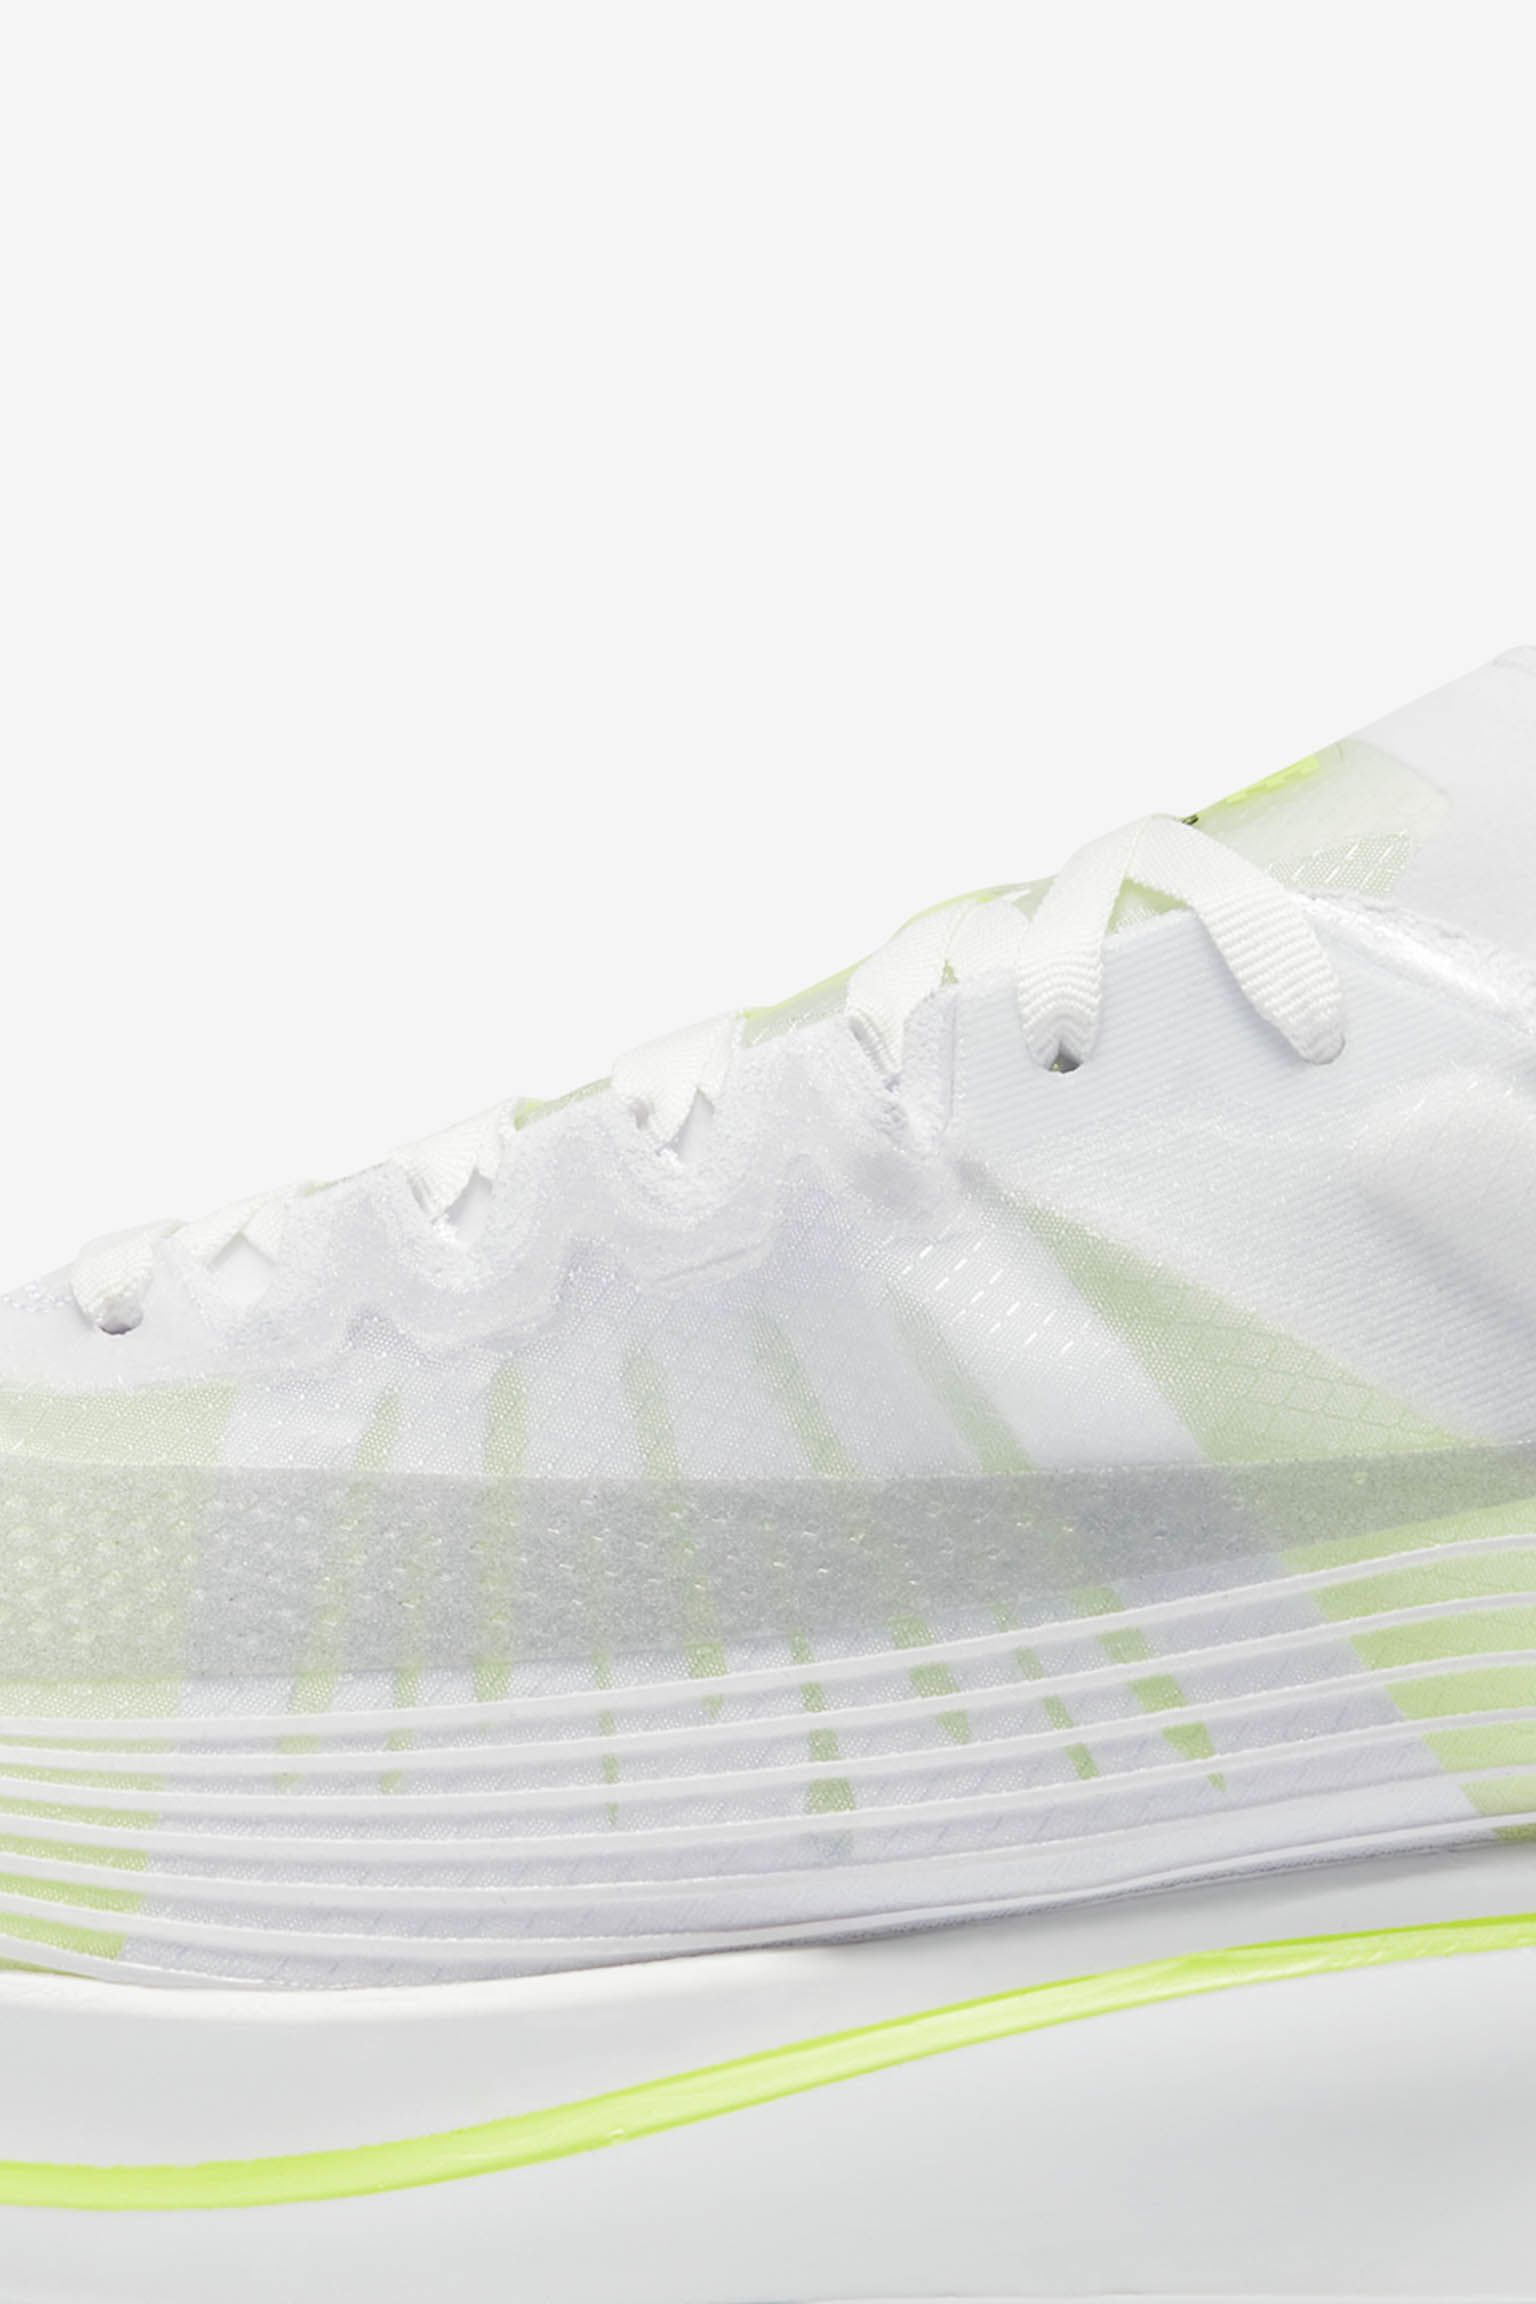 Nike Zoom Fly SP 'White & Volt Glow' Release Date